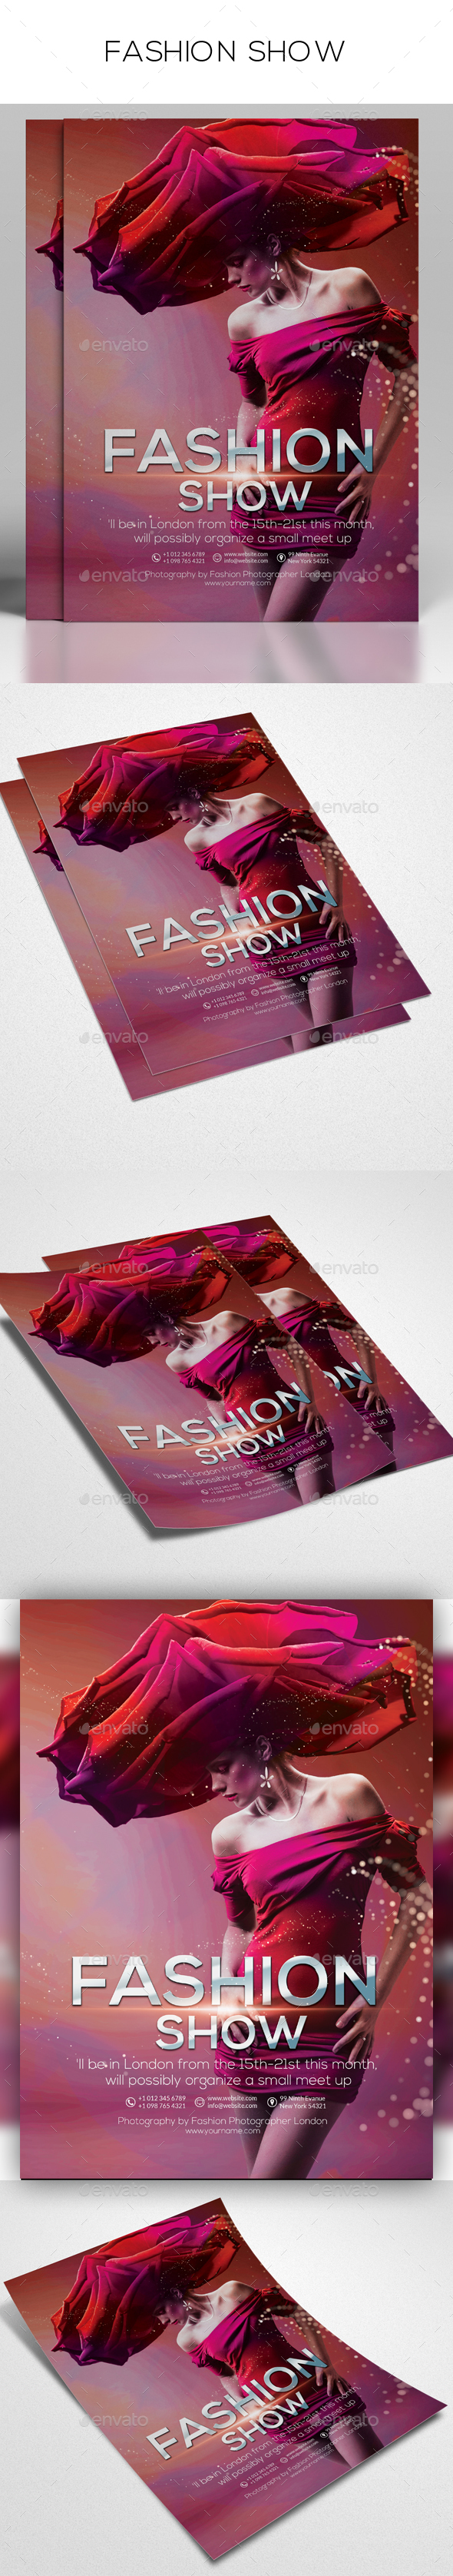 Fashion show flyer templates 35